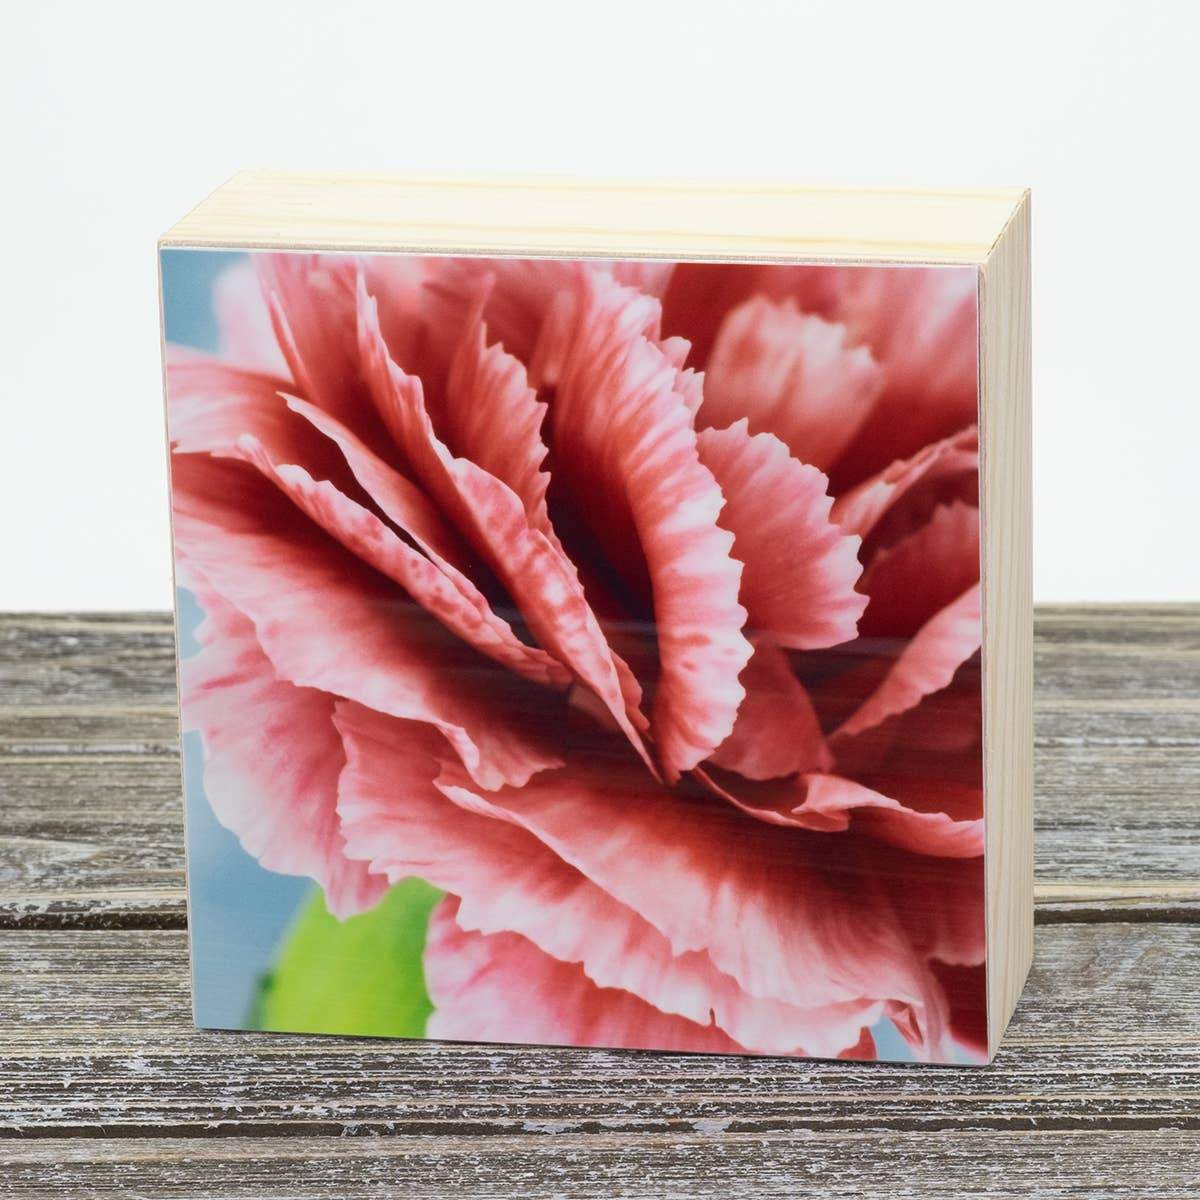 Carnation Aluminum Photo on Wood Block art print ANVIL metals studio